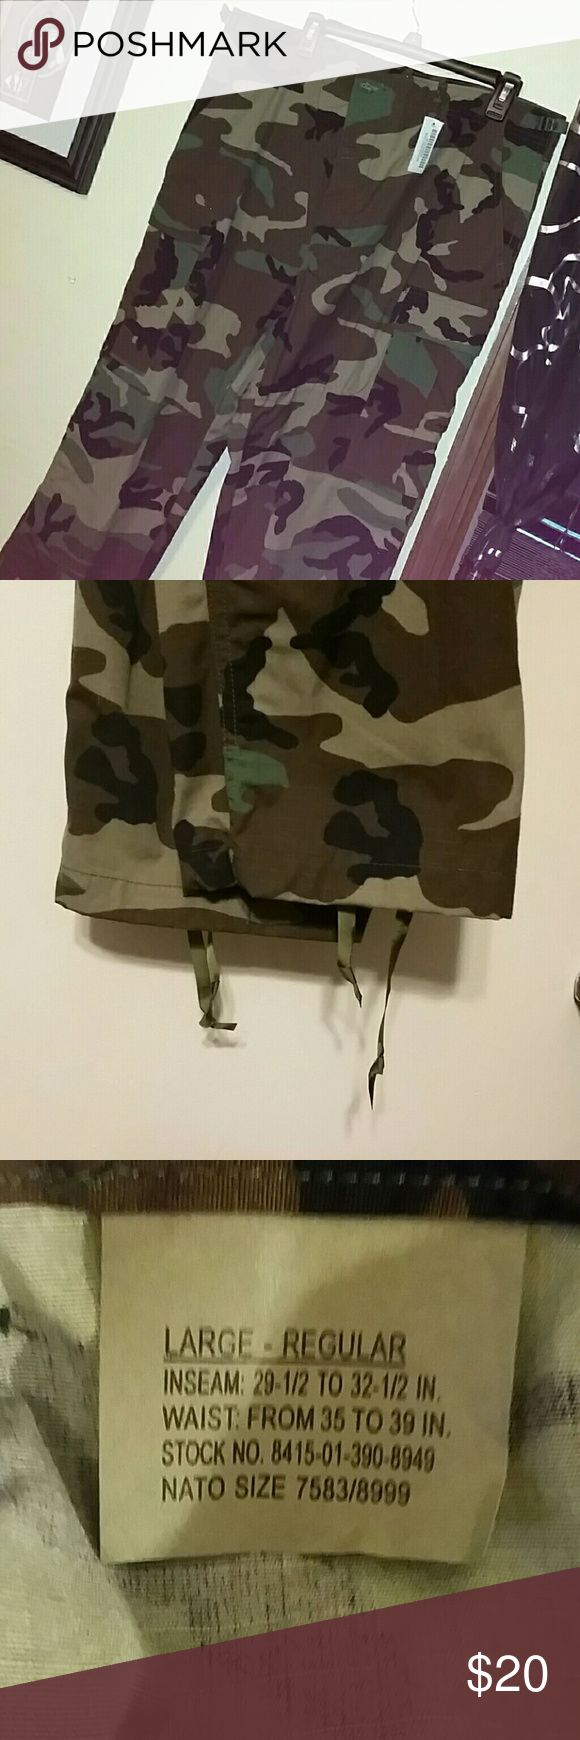 Army Camo Cargos NWT army camo cargos size Large Regular (see pic #3) w/button fly & ankle ties Pants Cargo